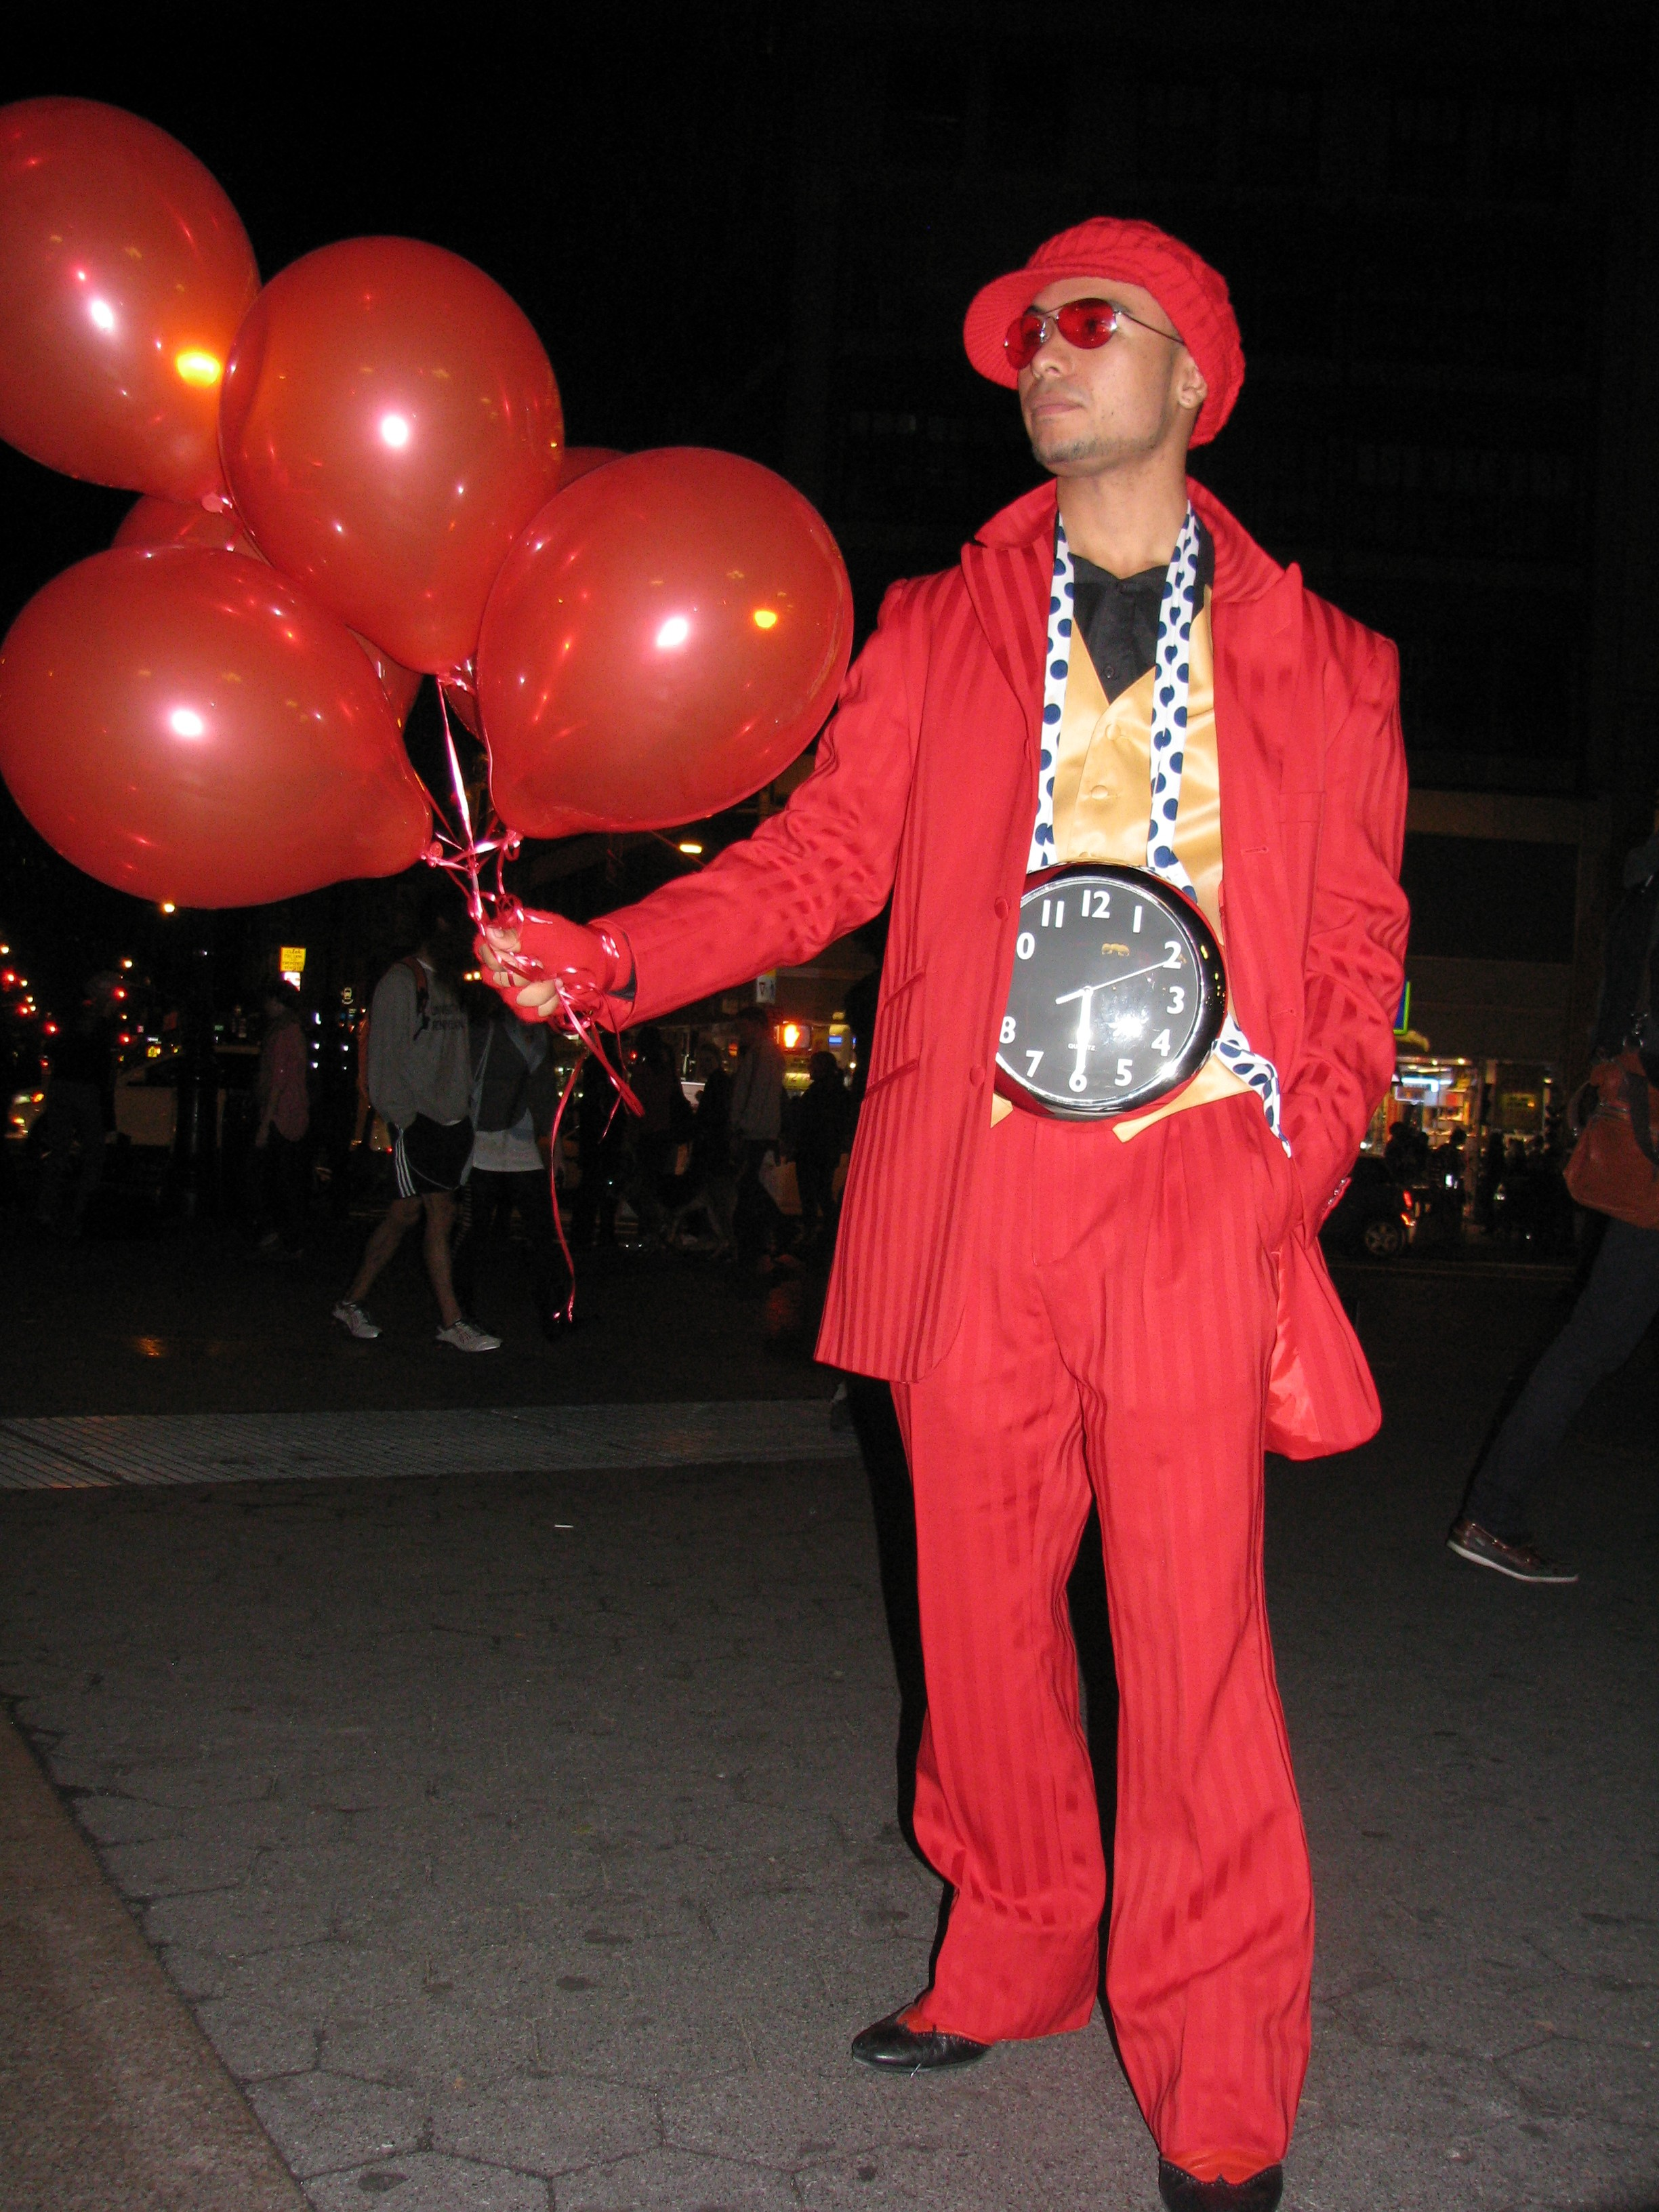 Man dressed in red with balloons